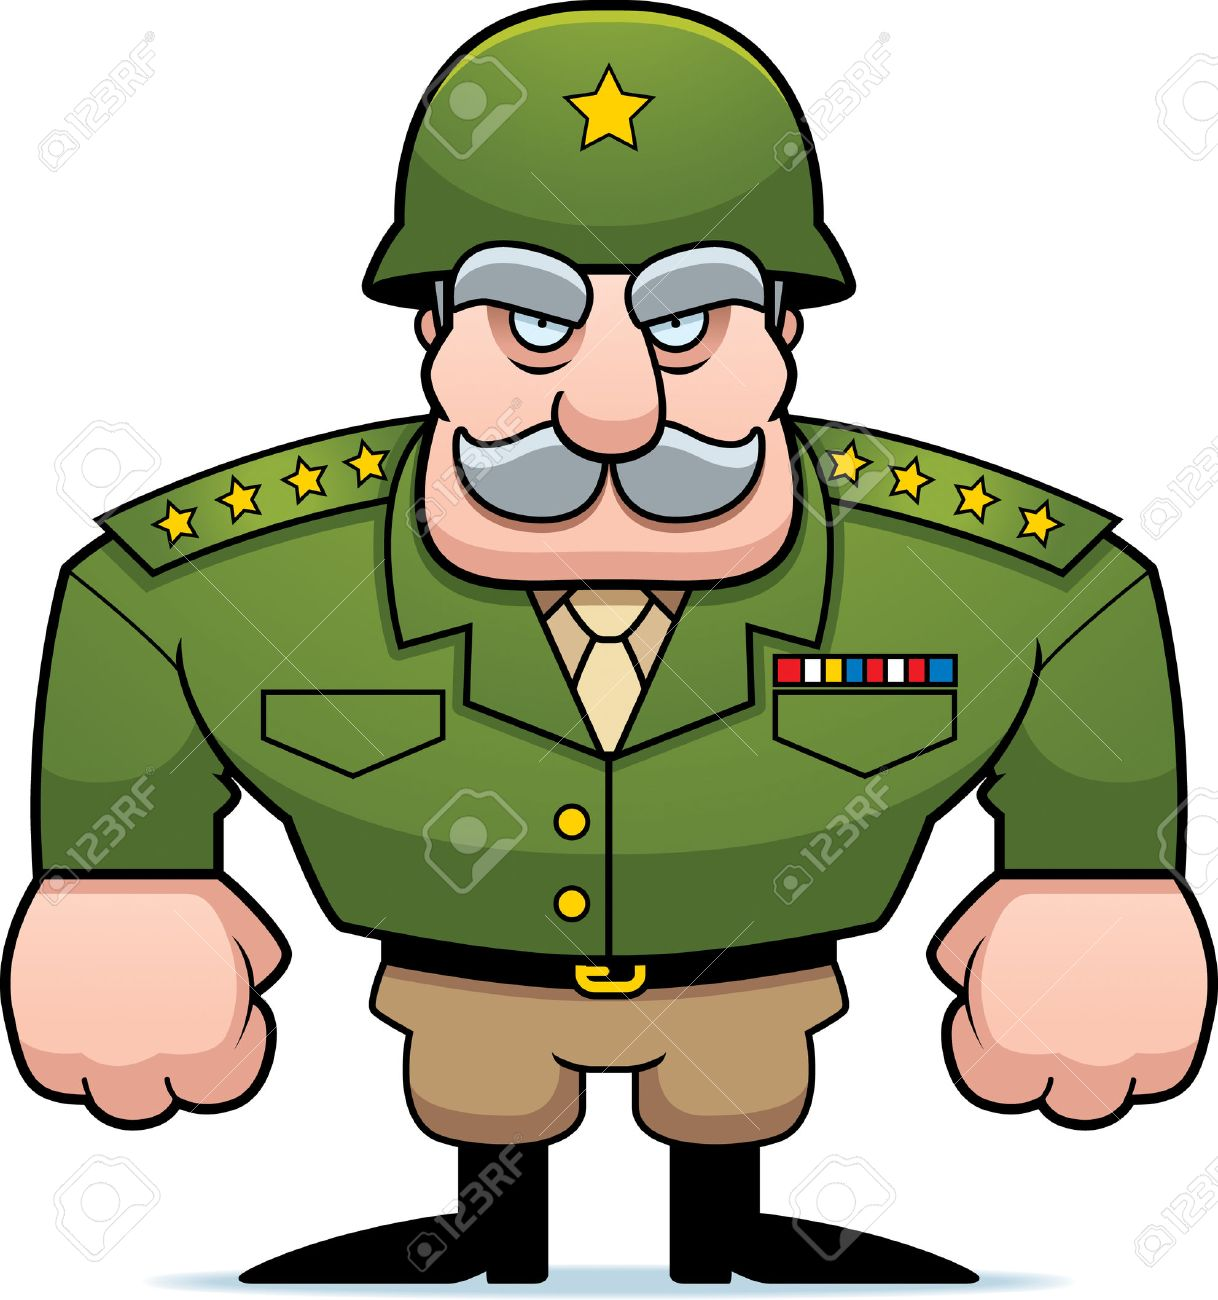 a cartoon military general with a helmet on royalty free cliparts rh 123rf com cartoon army images Cartoon Army Helmet